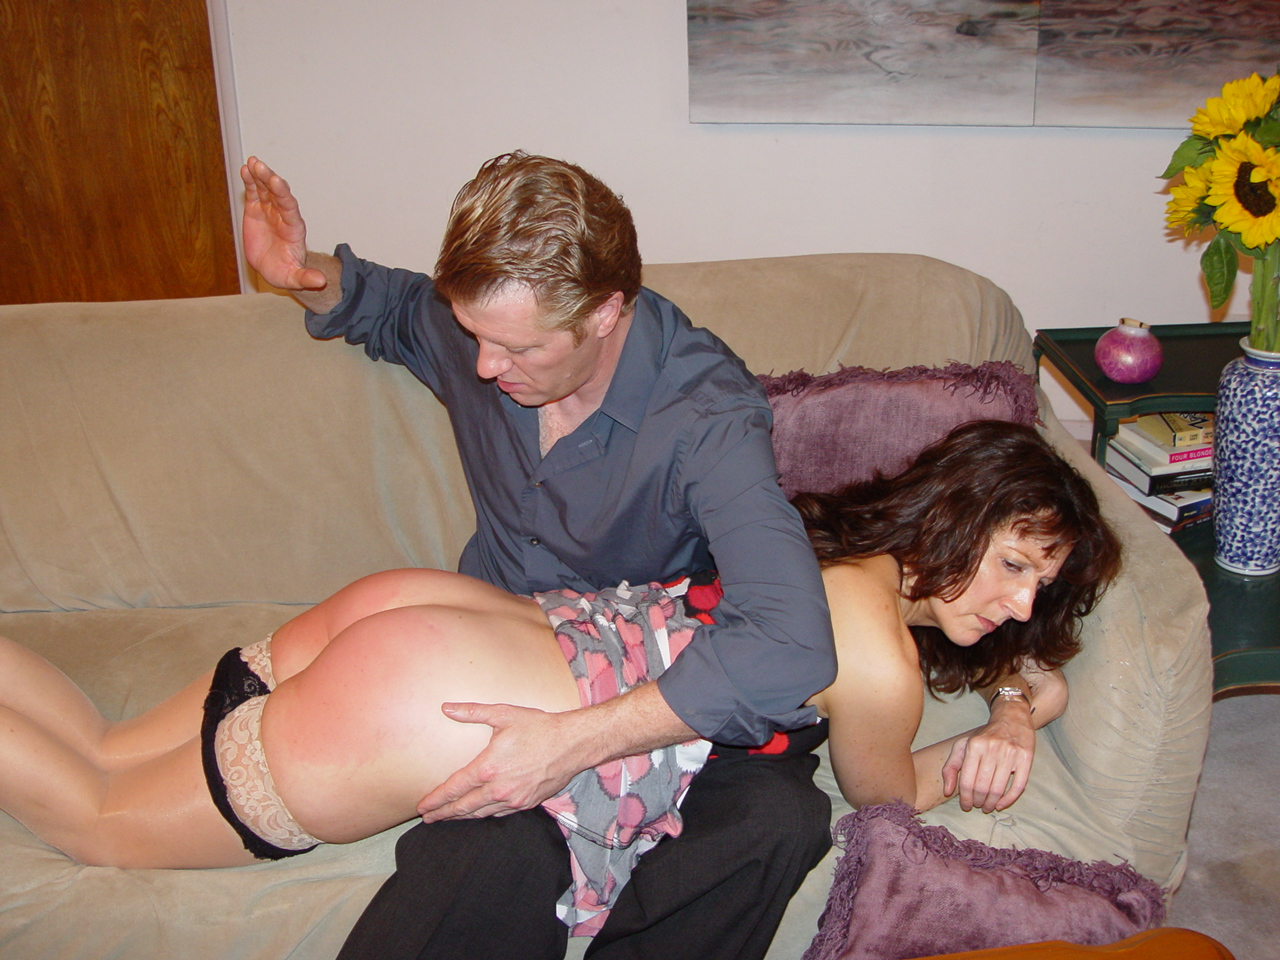 Is Spanking An Effective Way To Discipline Kids